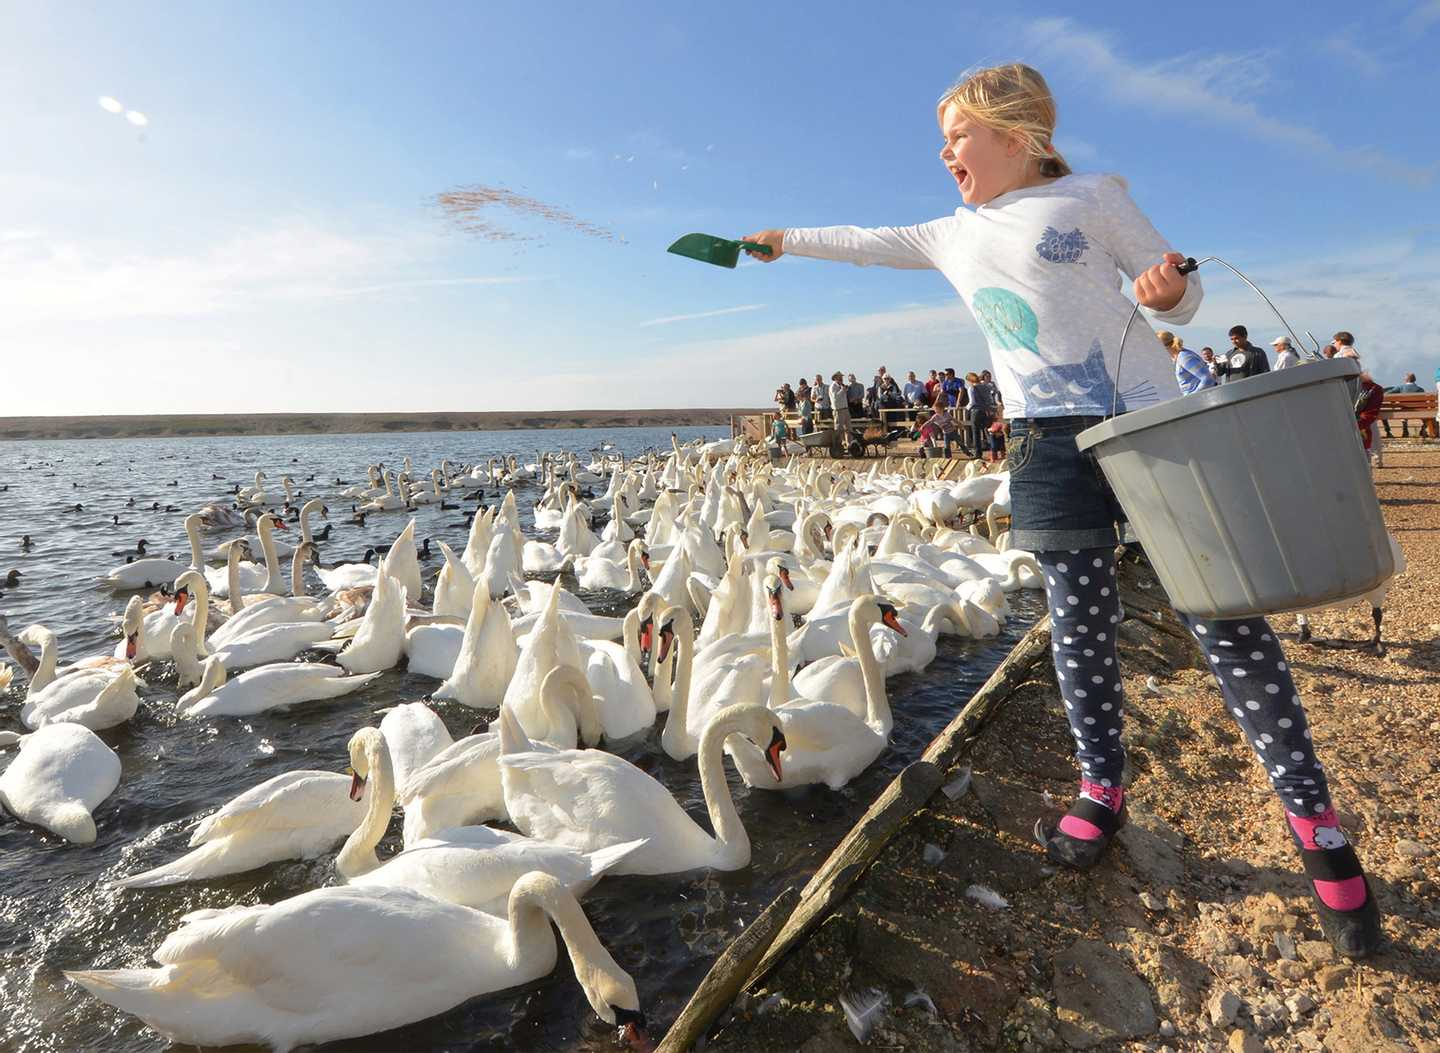 A guest at Abbotsbury Swannery feeding the swans